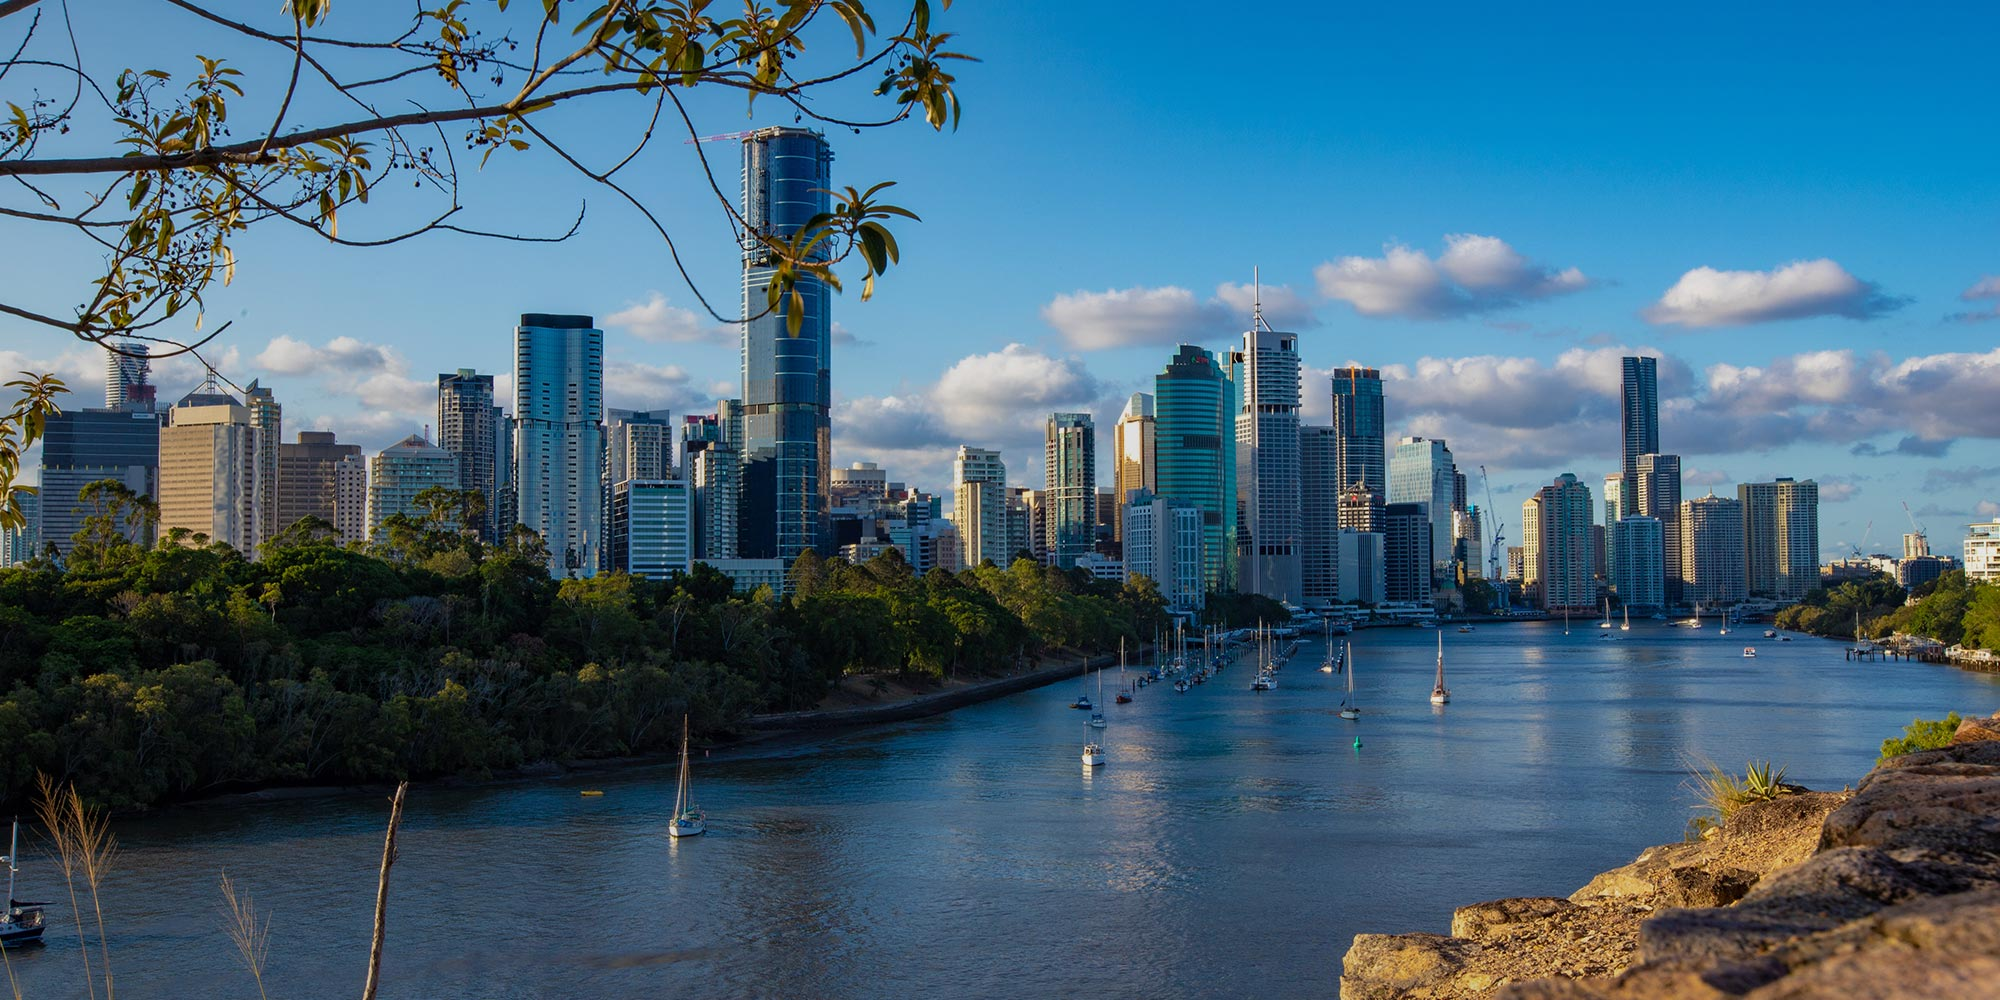 View of Brisbane, Australia from the Brisbane river, a popular destination for international students learning English